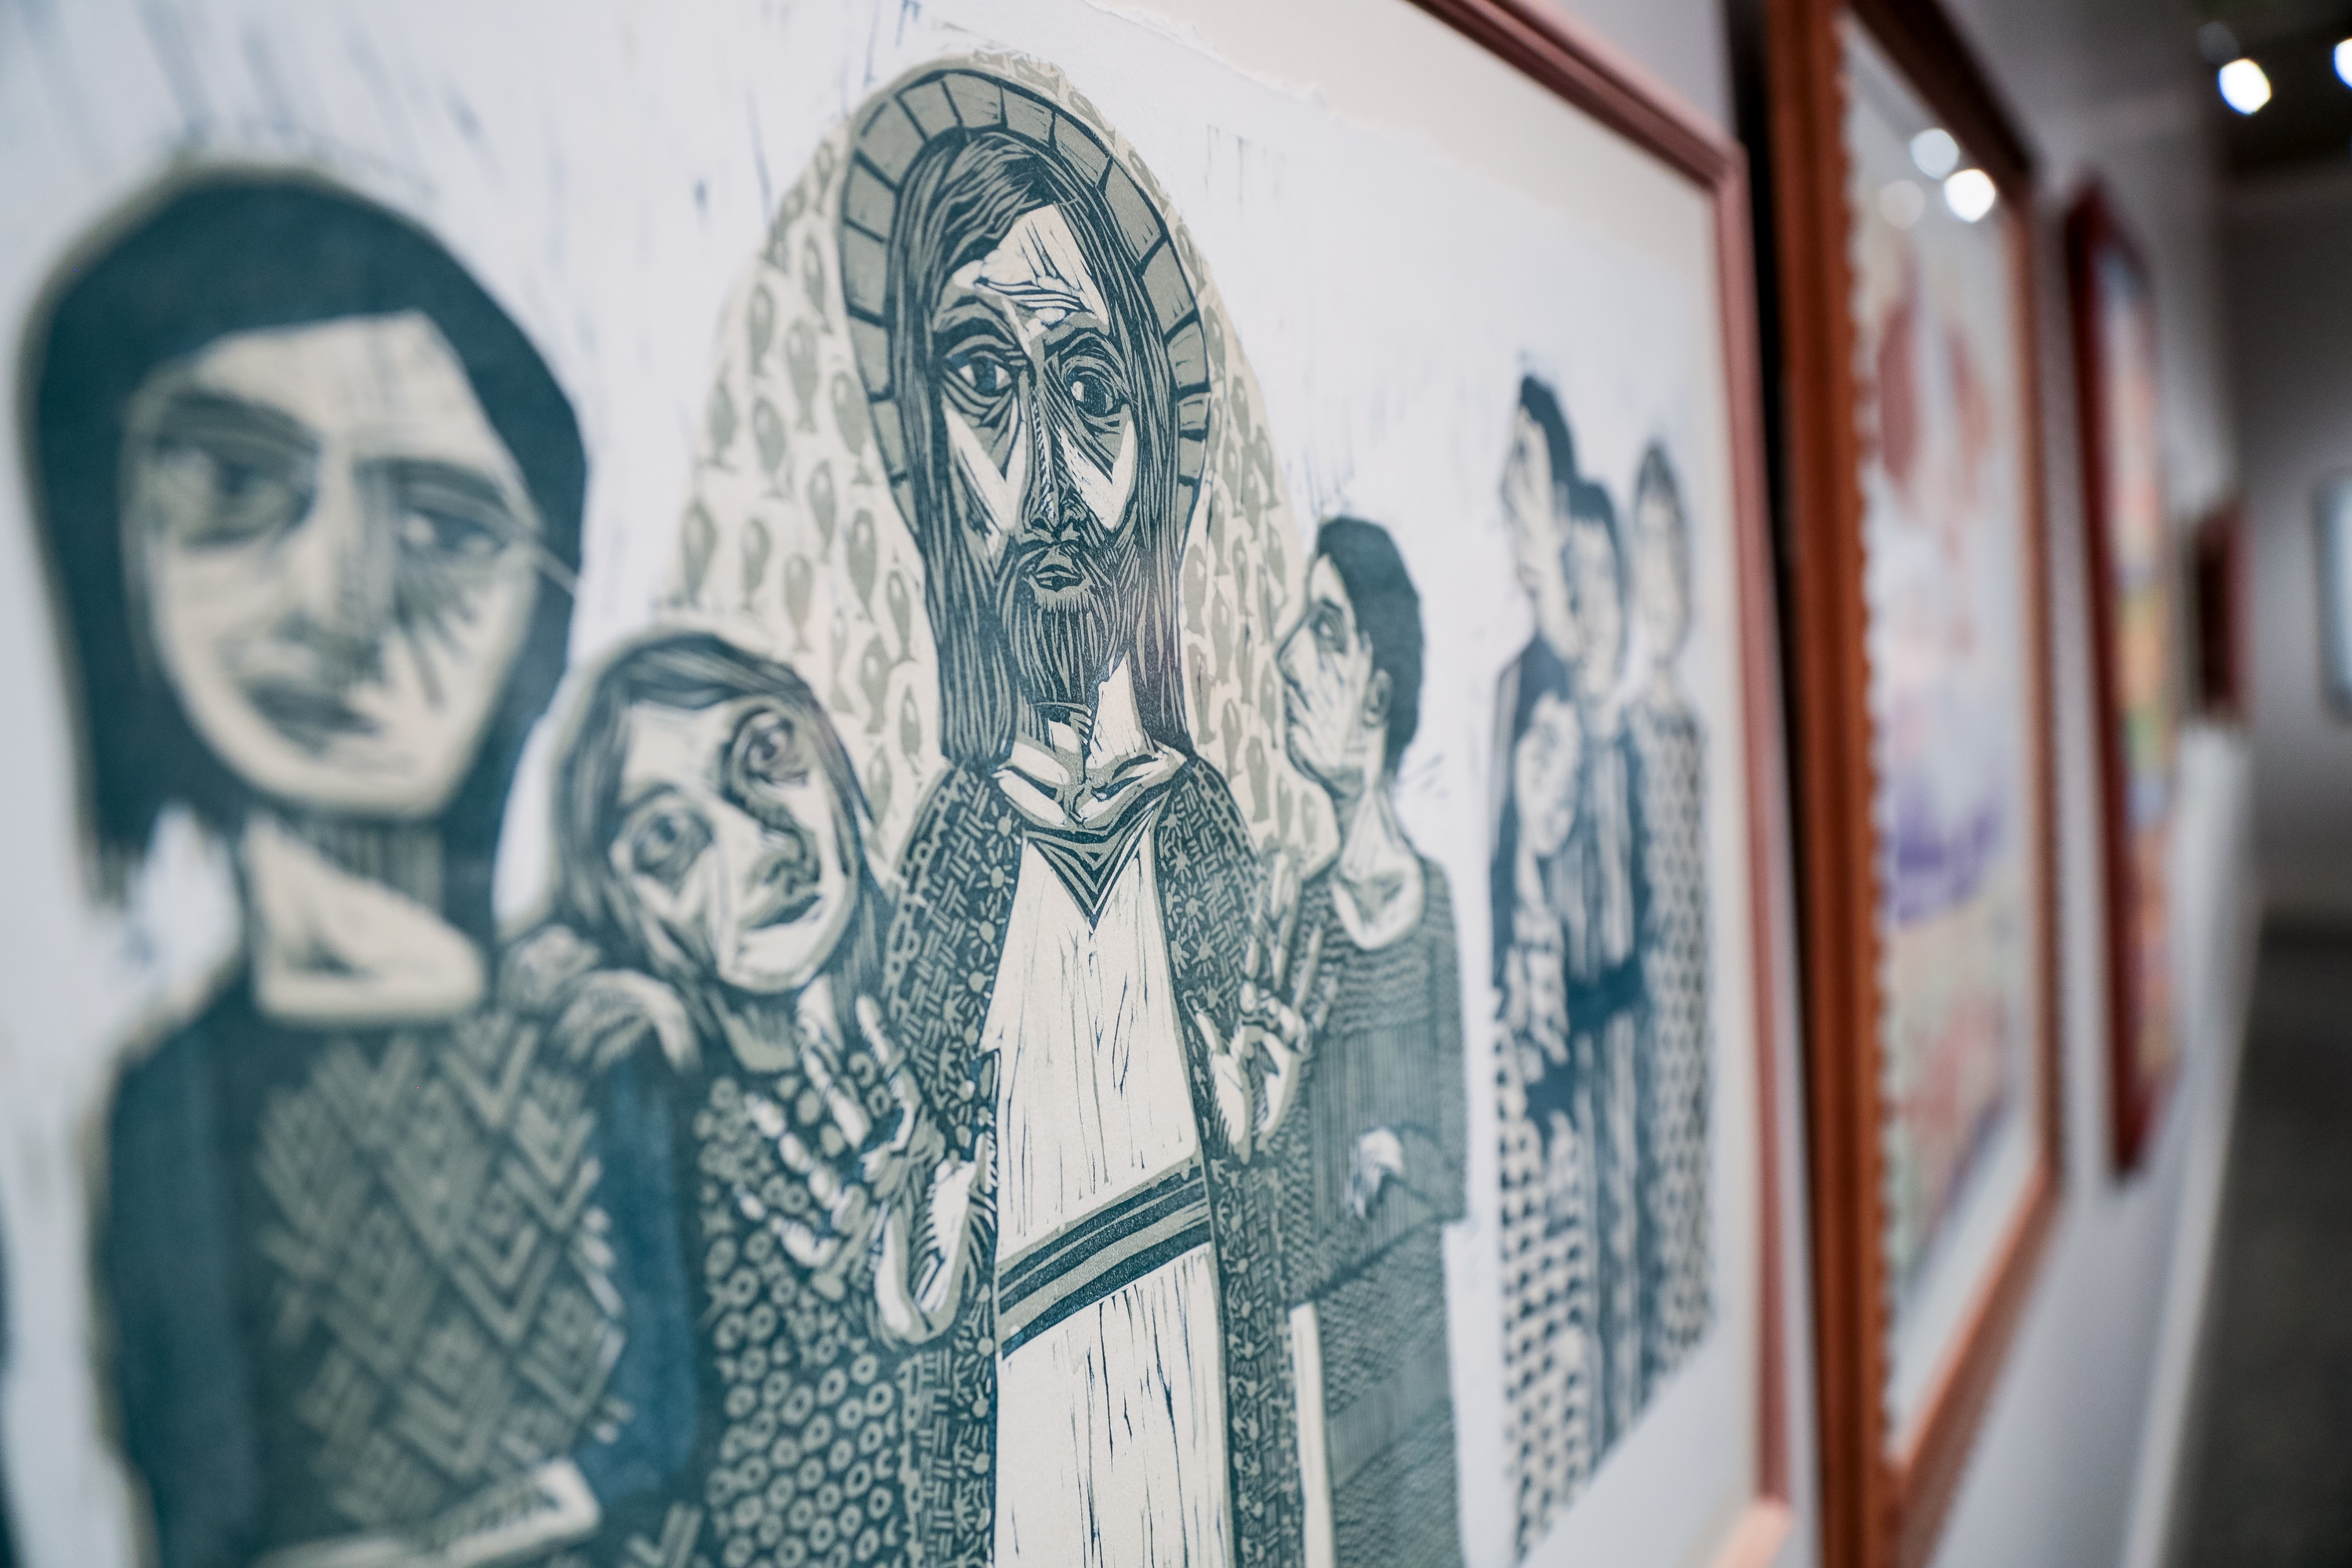 """""""Come Unto Me,"""" a relief reduction print by Sarah Anne Winegar, is pictured during a media preview for the 11th International Art Exhibition at the Church History Museum in Salt Lake City on Tuesday, March 12, 2019."""